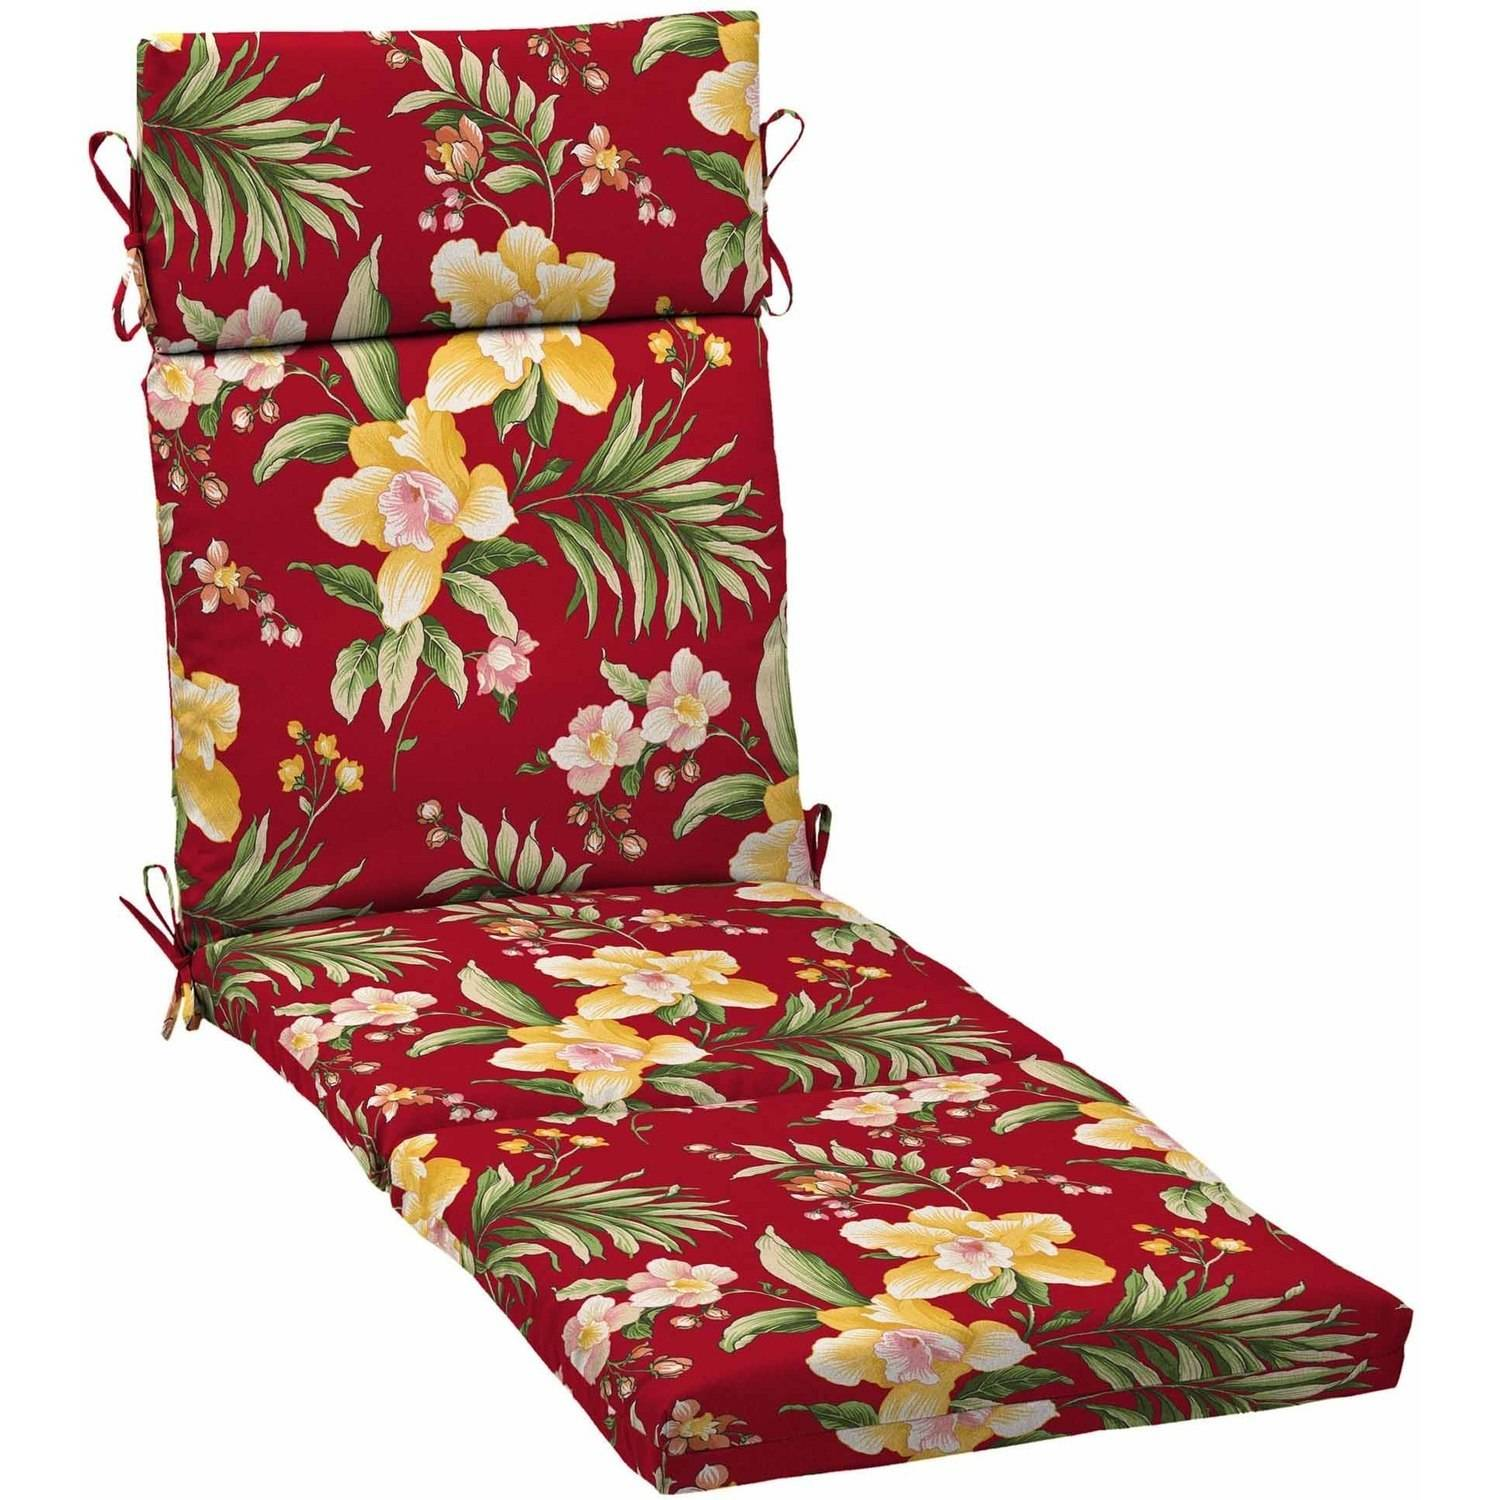 Mainstays Outdoor Patio Chaise Lounge Cushion, Multiple Patterns